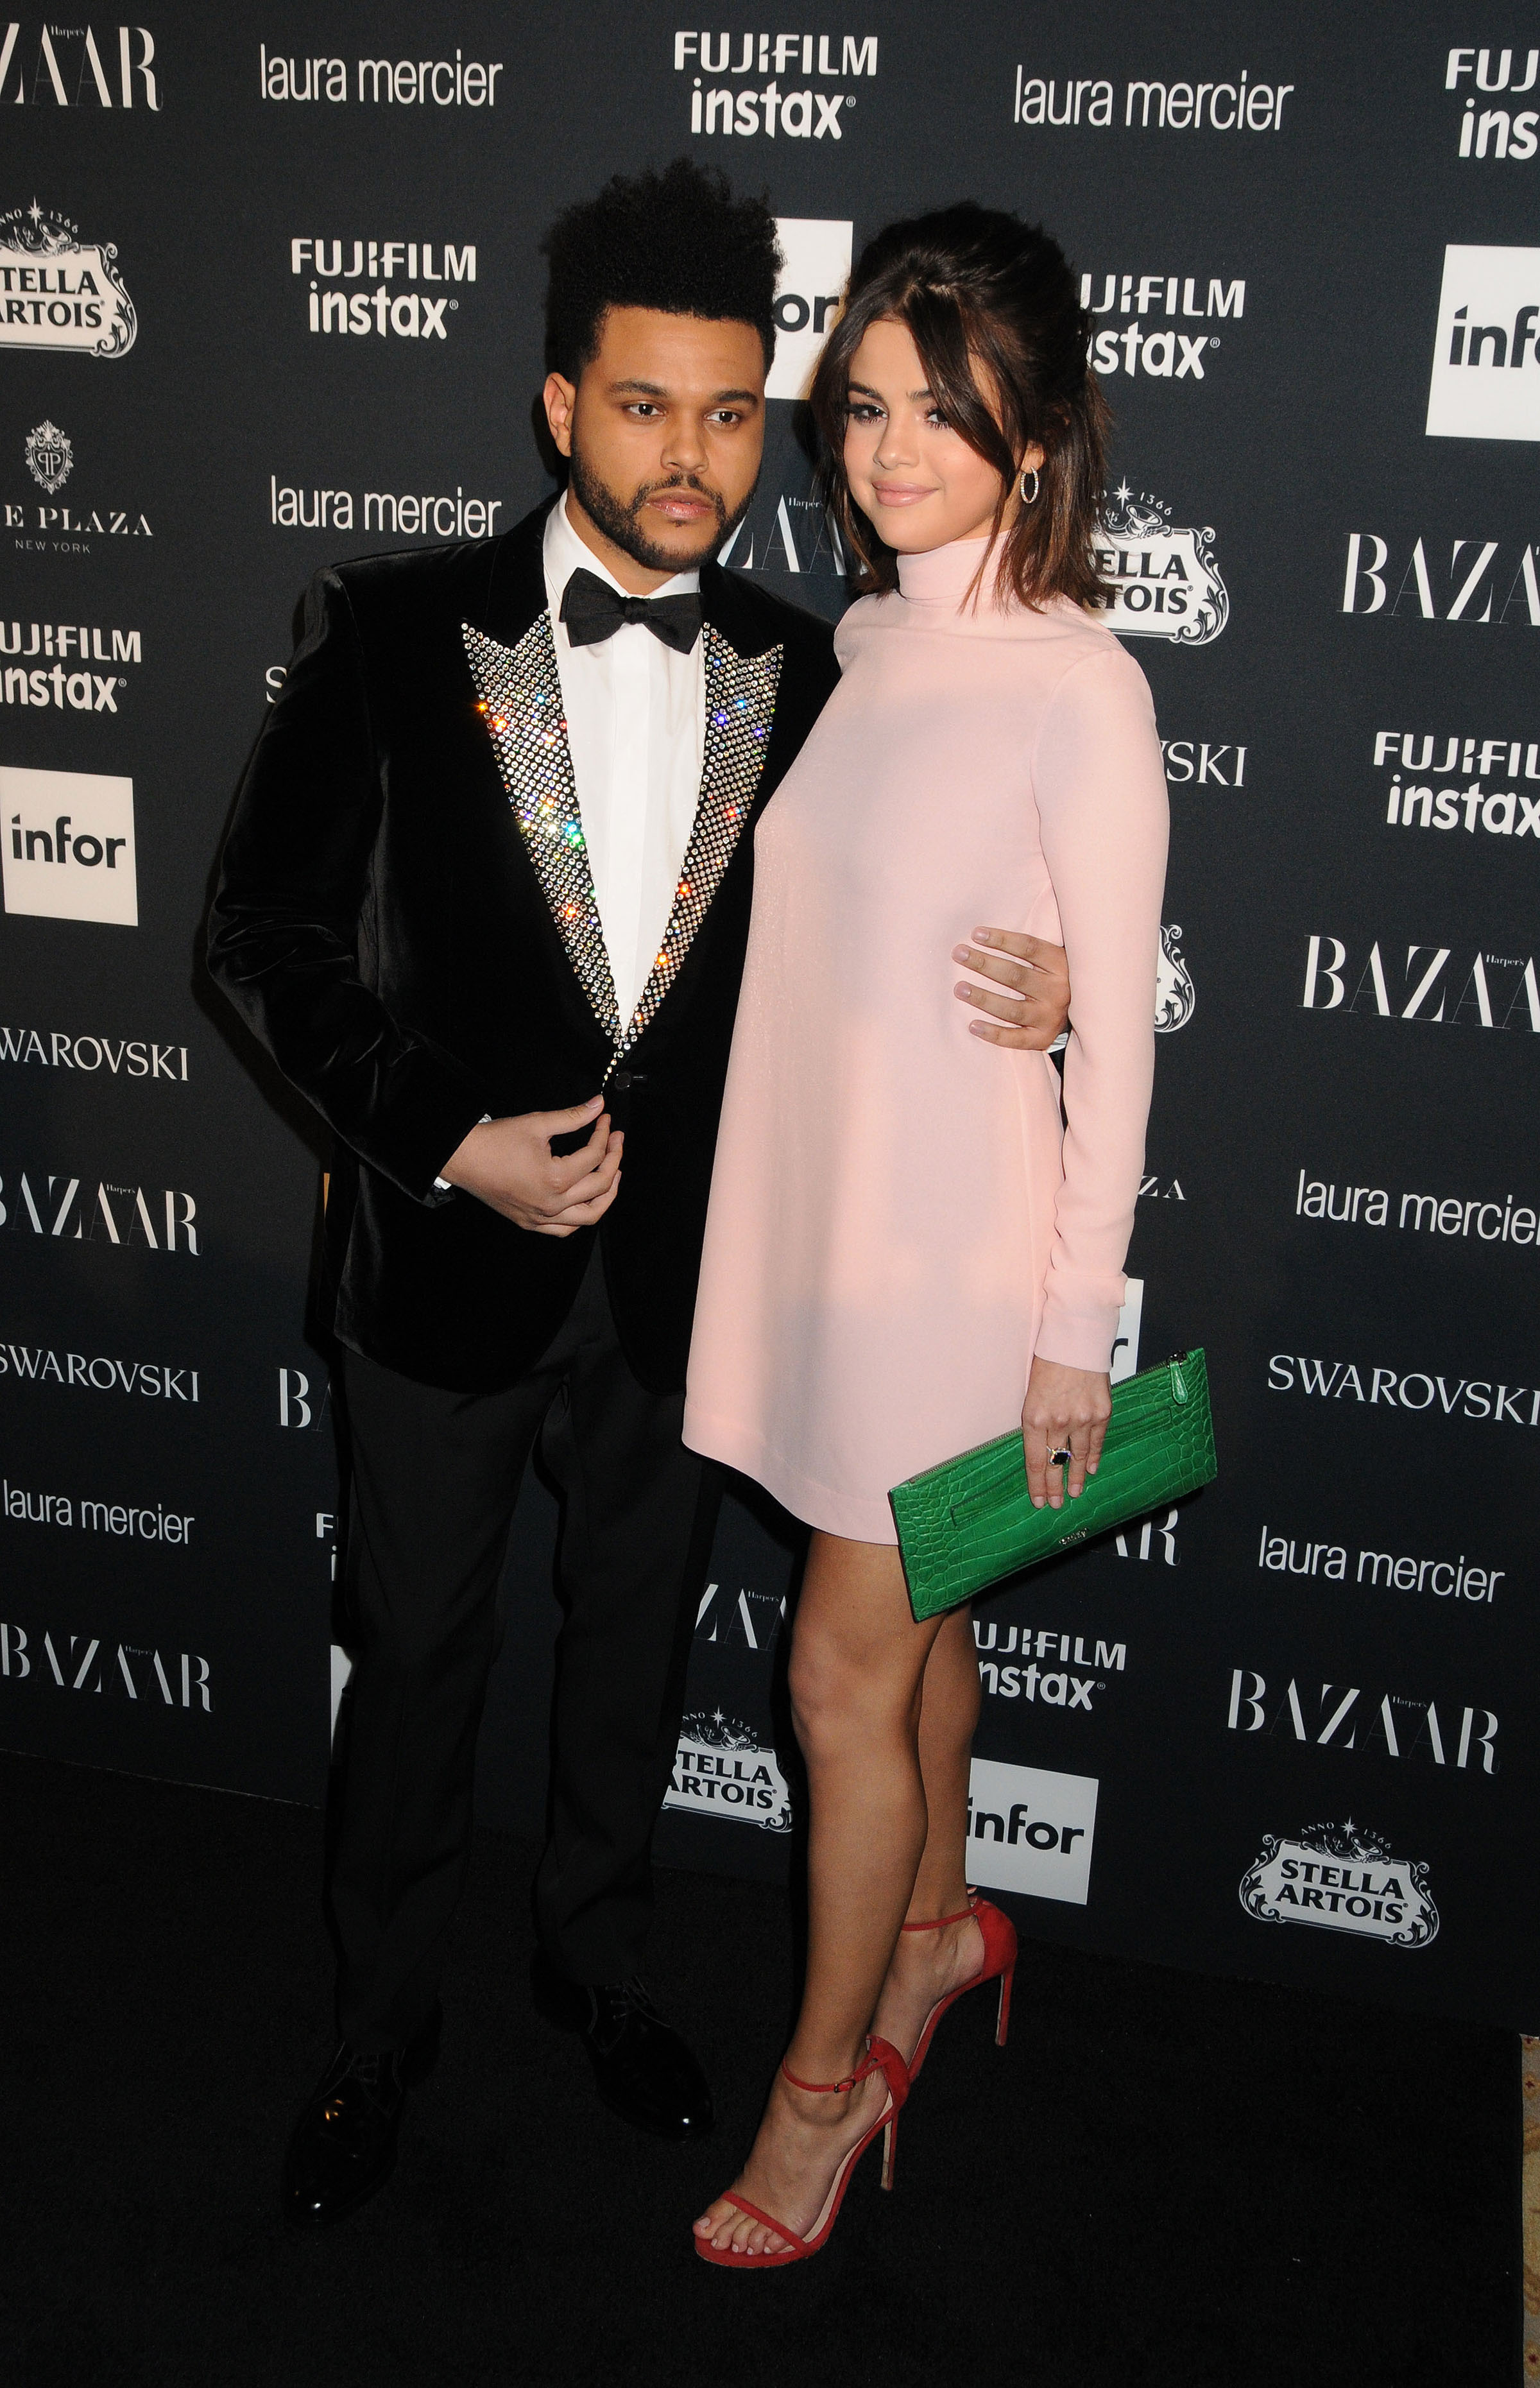 Selena Gomez and The Weeknd arrives to the 2017 Harper's Bazaar Icons - New York <P> Pictured: Selena Gomez, The Weeknd <B>Ref: SPL1572867  080917  </B><BR/> Picture by: Johns PkI / Splash News<BR/> </P><P> <B>Splash News and Pictures</B><BR/> Los Angeles:310-821-2666<BR/> New York:212-619-2666<BR/> London:870-934-2666<BR/> <span id=